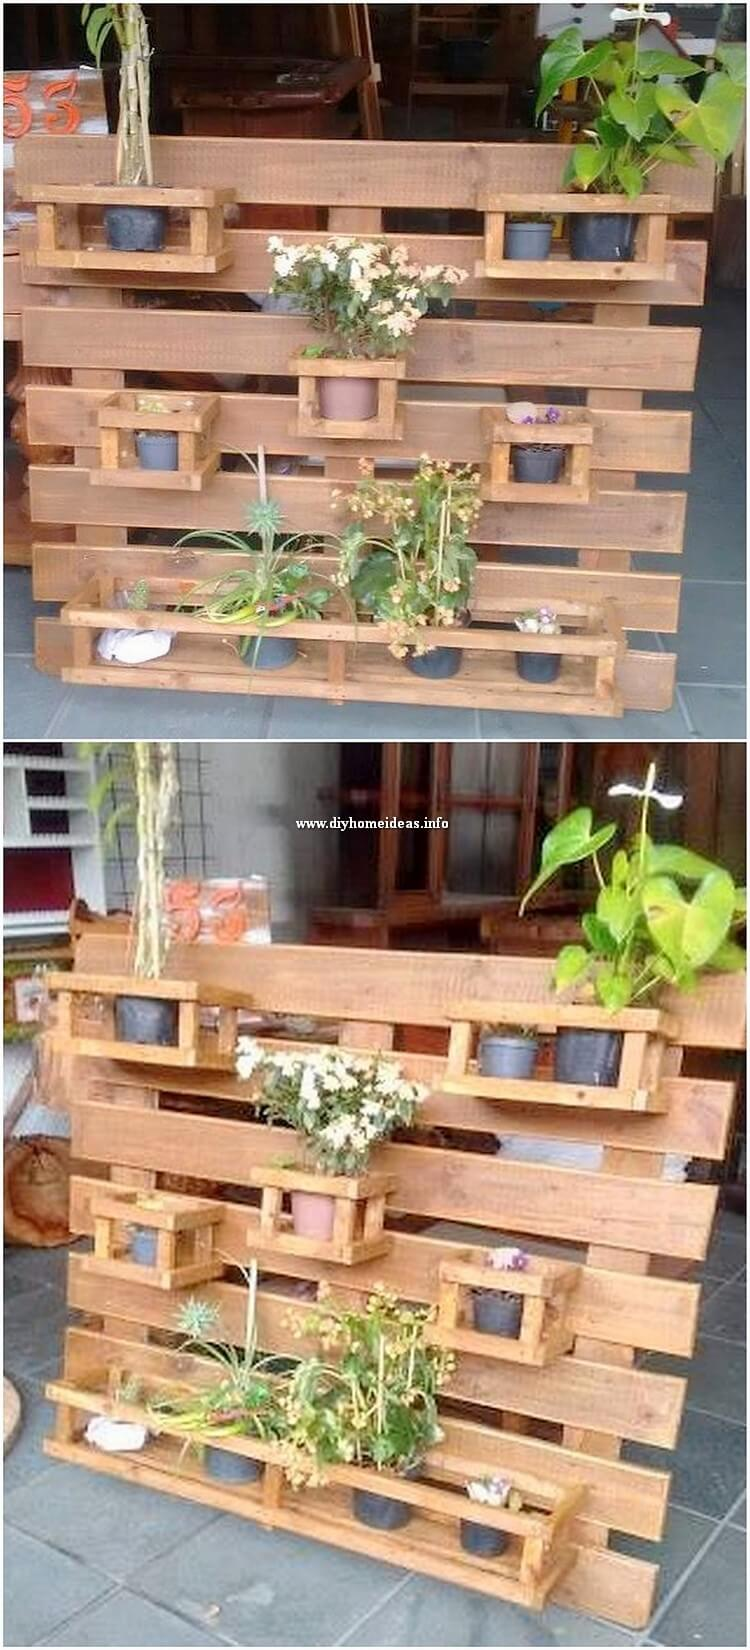 Pallet Wall Planter